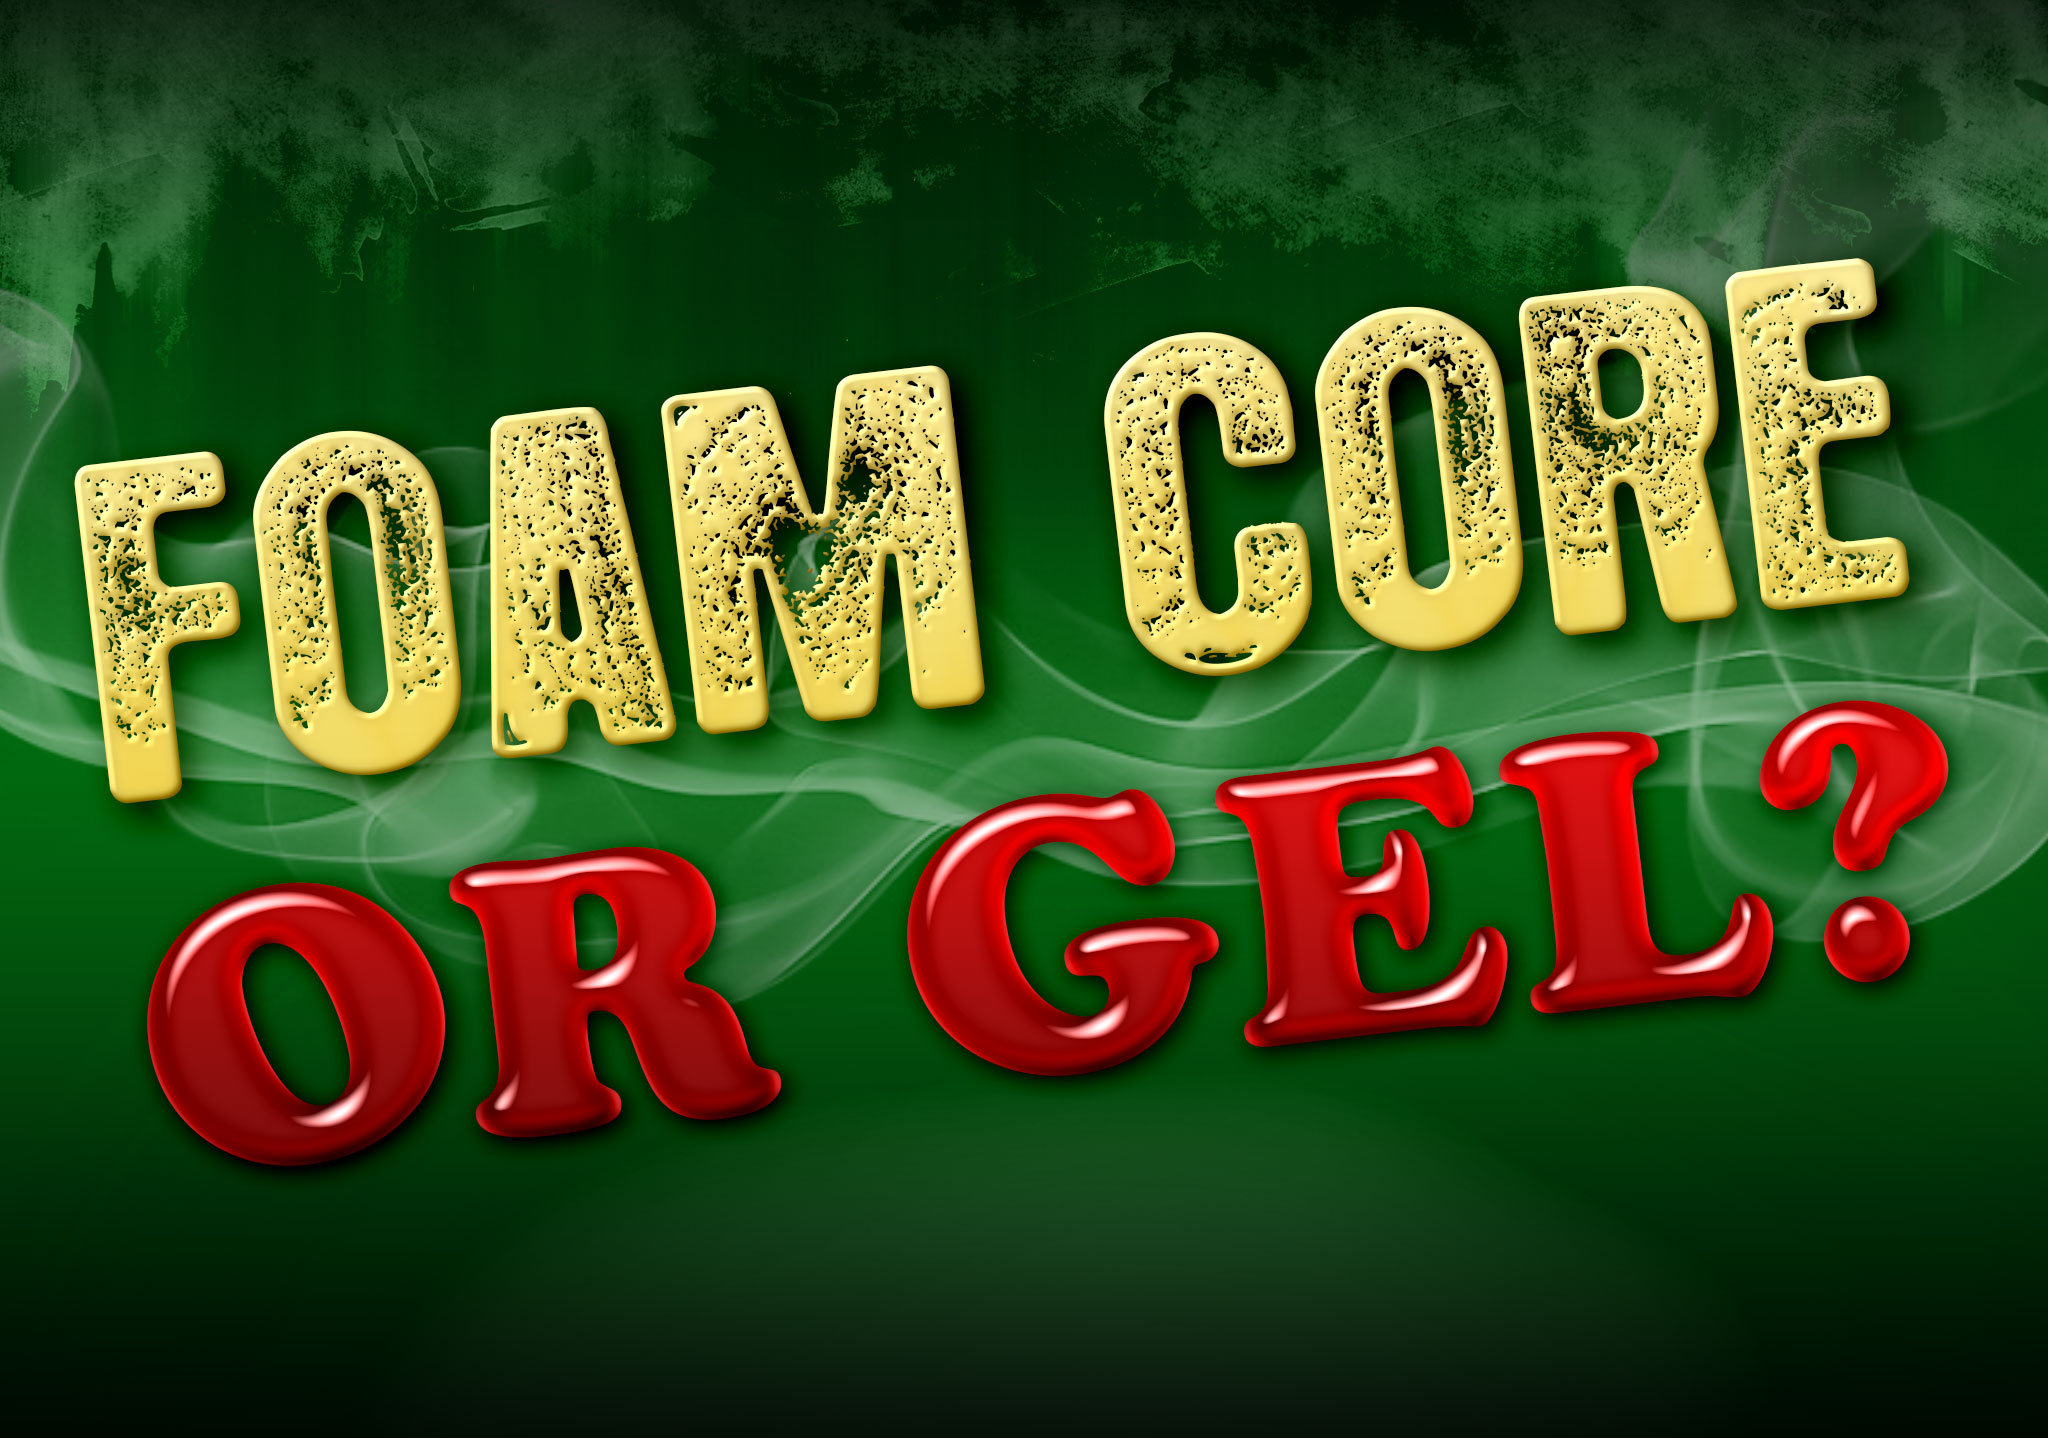 Cigar Q&A: Foam Core or Gel?